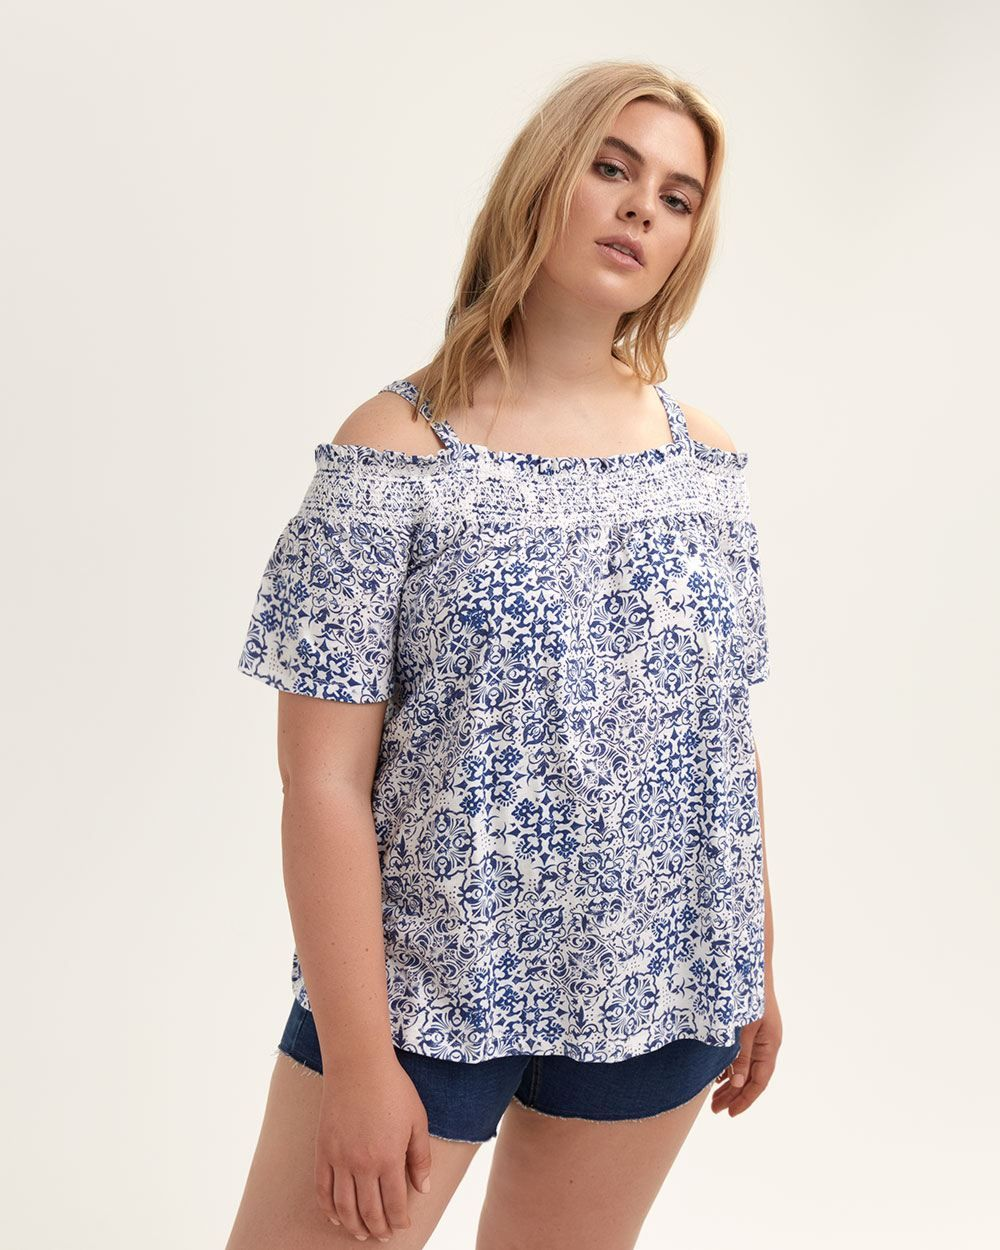 cf2dce5aaf0 Michel Studio Off-the-Shoulder Blouse with Ruffles